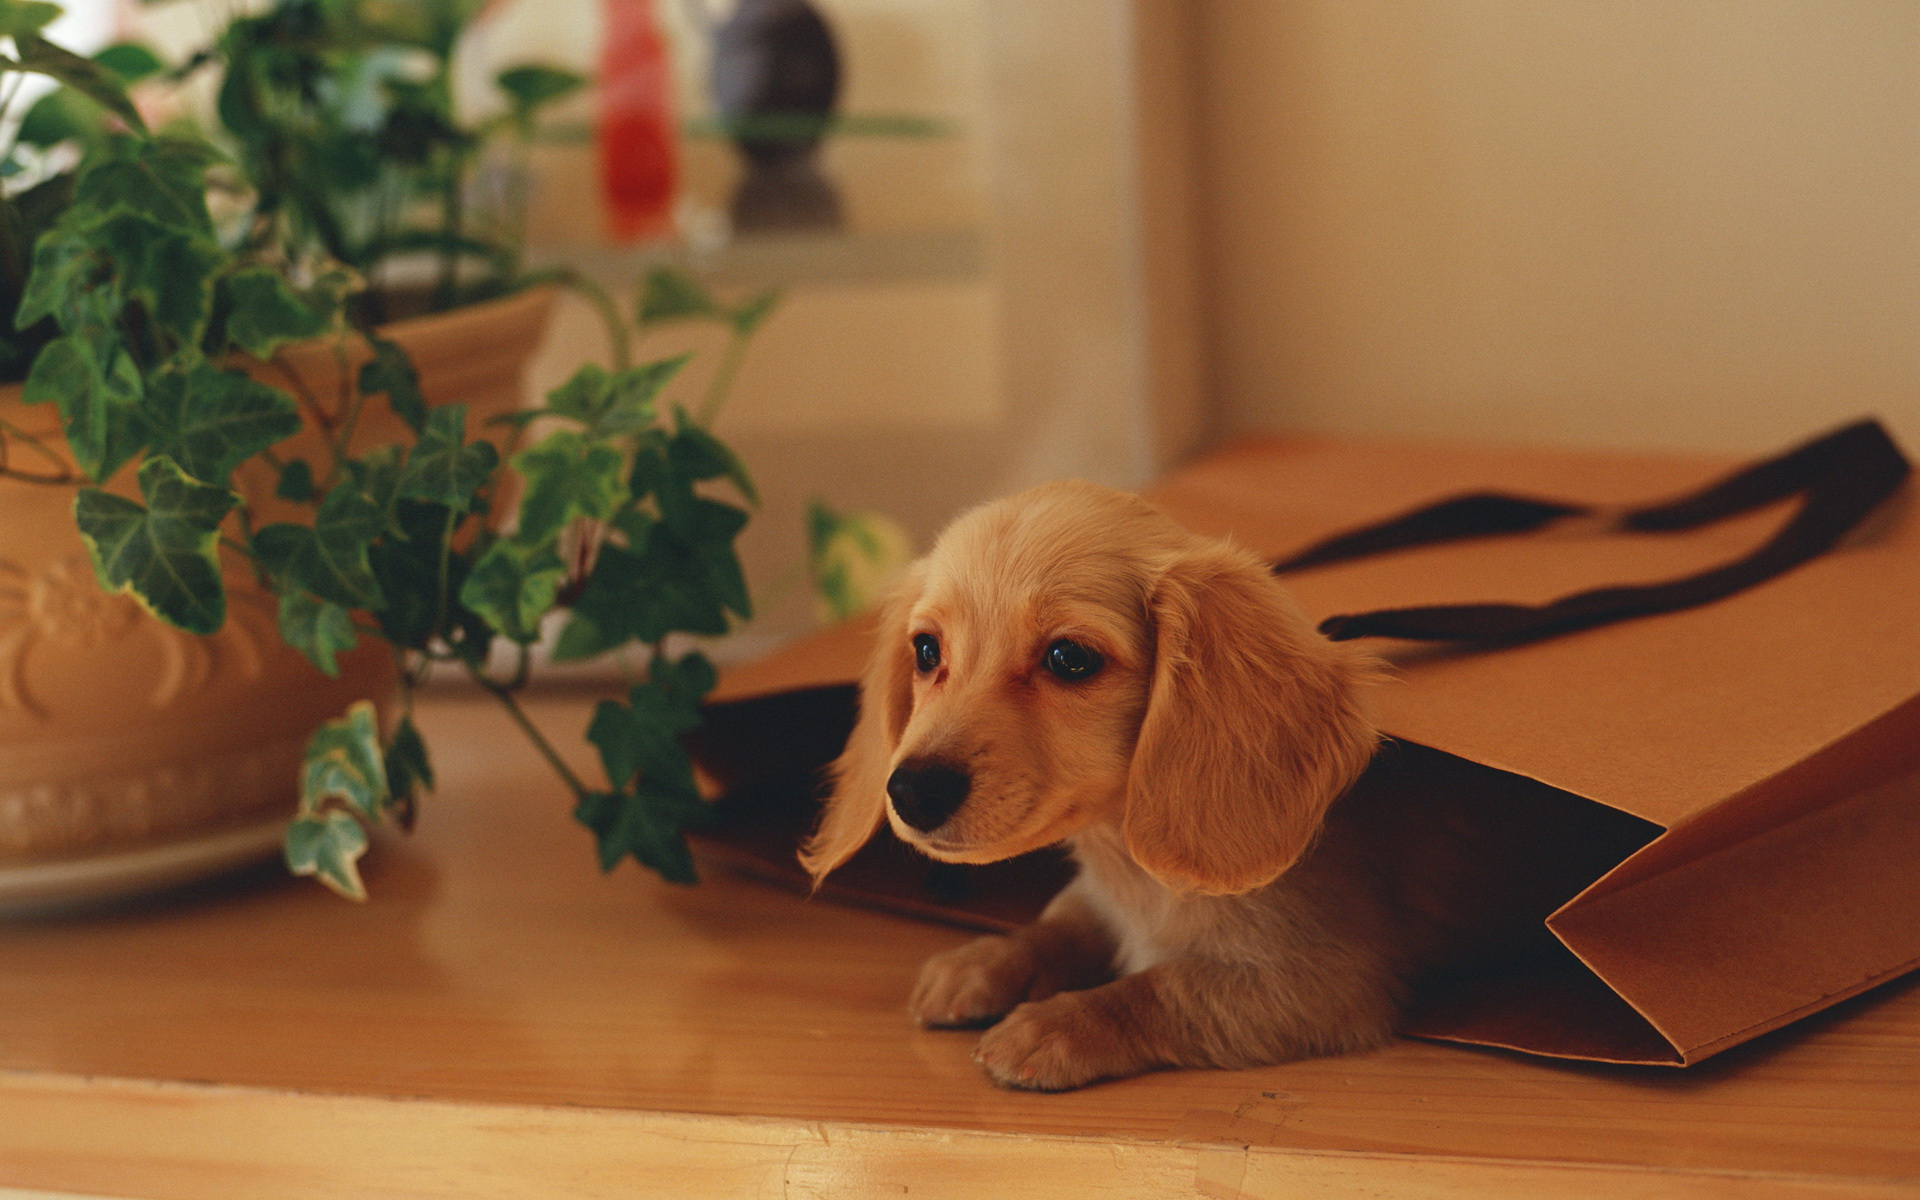 cute dog wallpapers free download